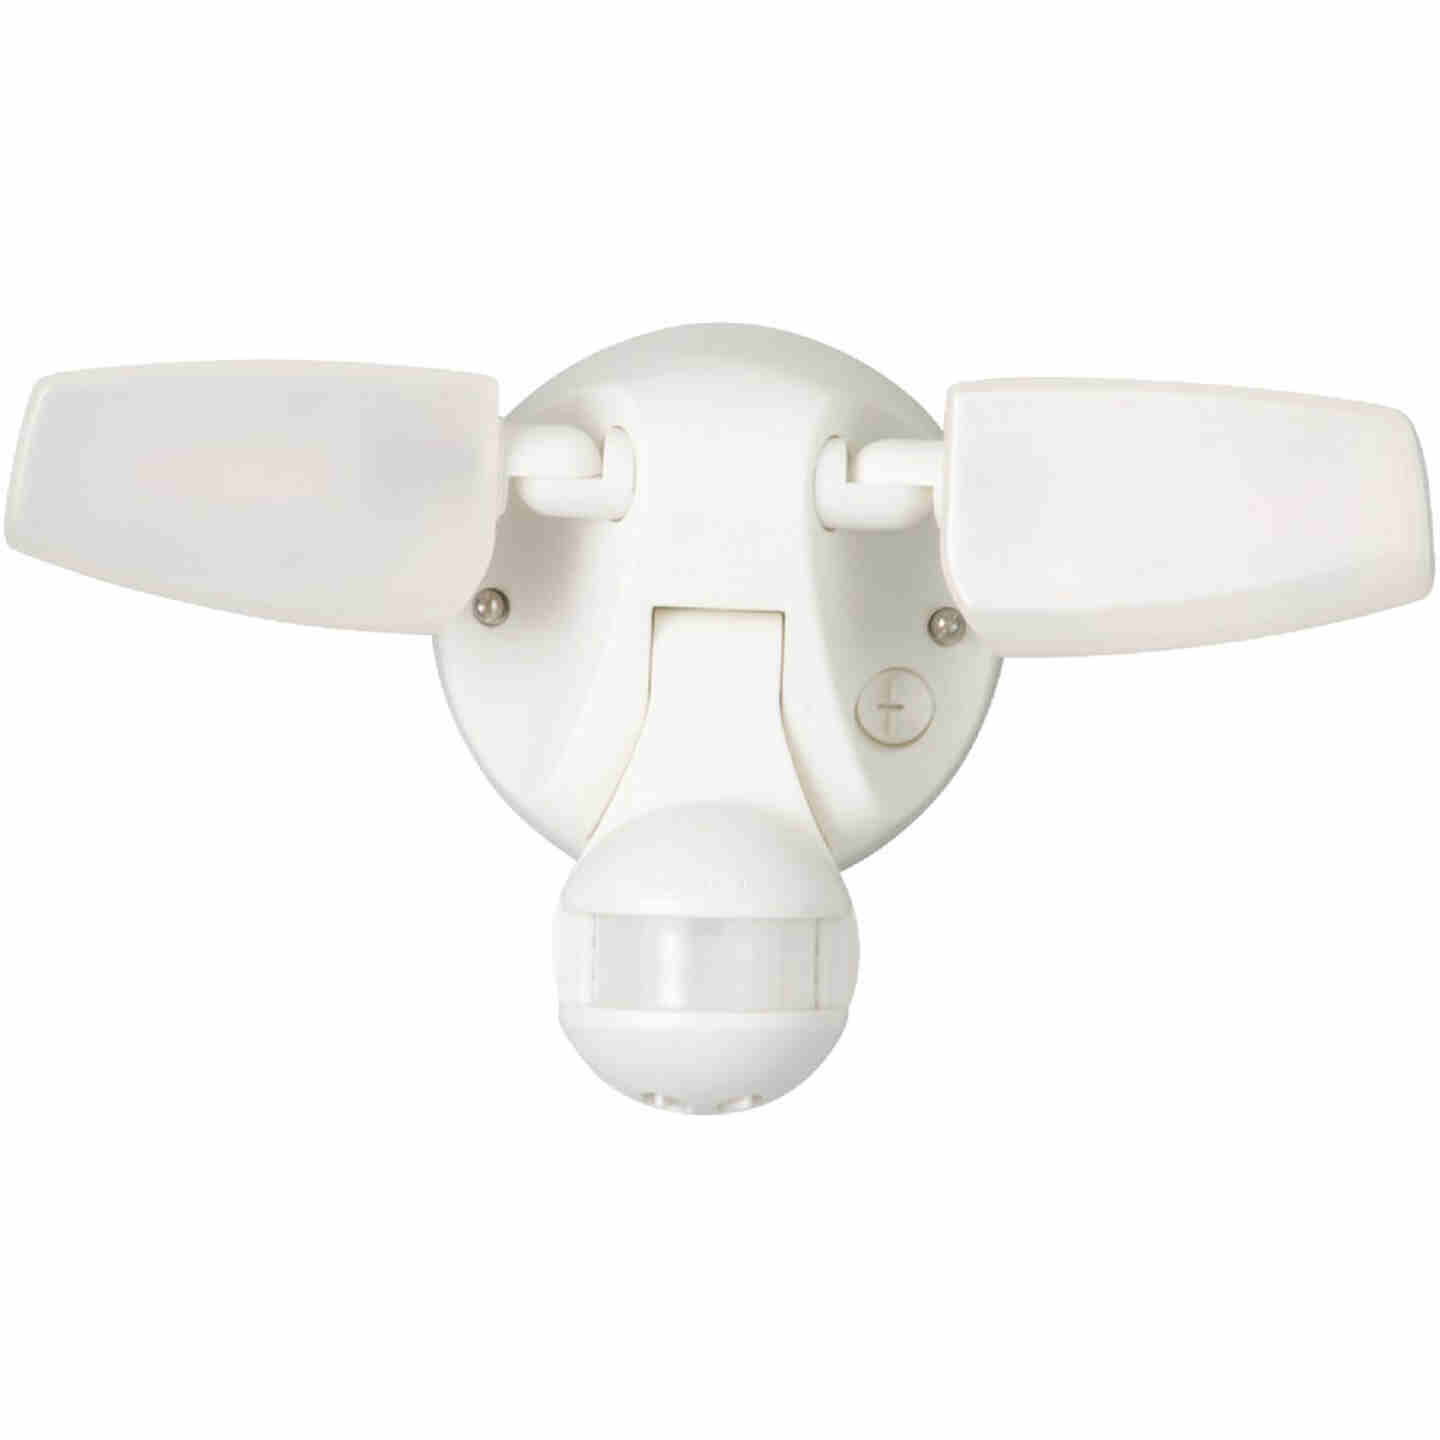 Halo Selectable Color Temperature White Motion Sensing LED Twin Head Floodlight Fixture Image 1